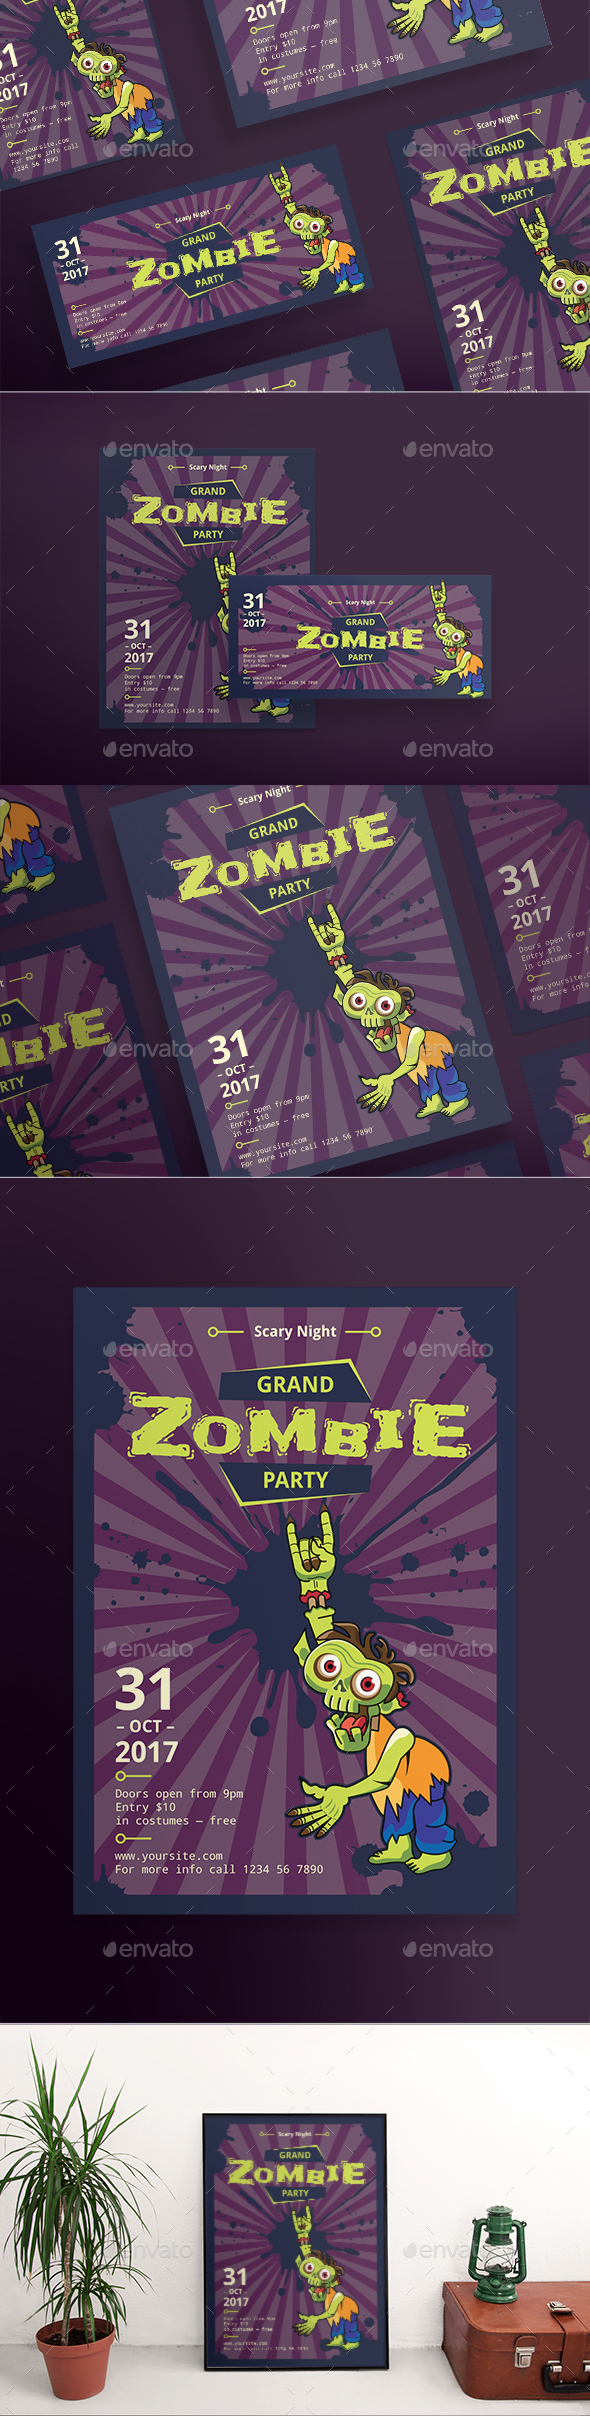 Grand Zombie Party Flyers - Clubs & Parties Events